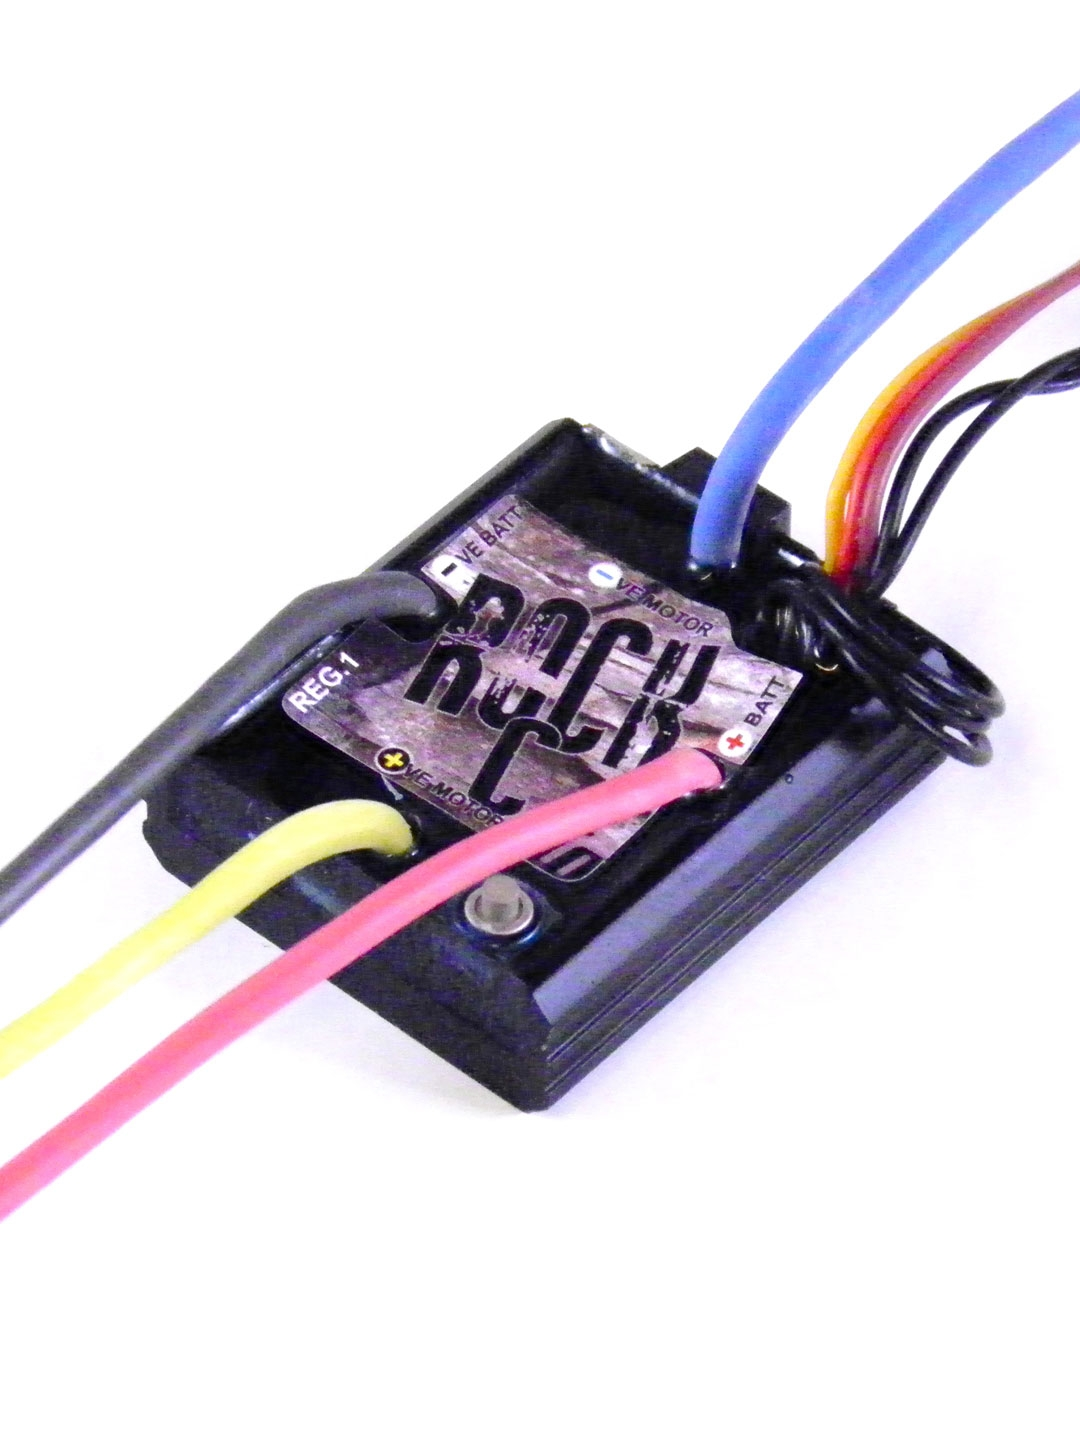 35t Brushed Rc Crawler Speed Controller Simple Motor Control Two Different Voltages Electronics Rockc